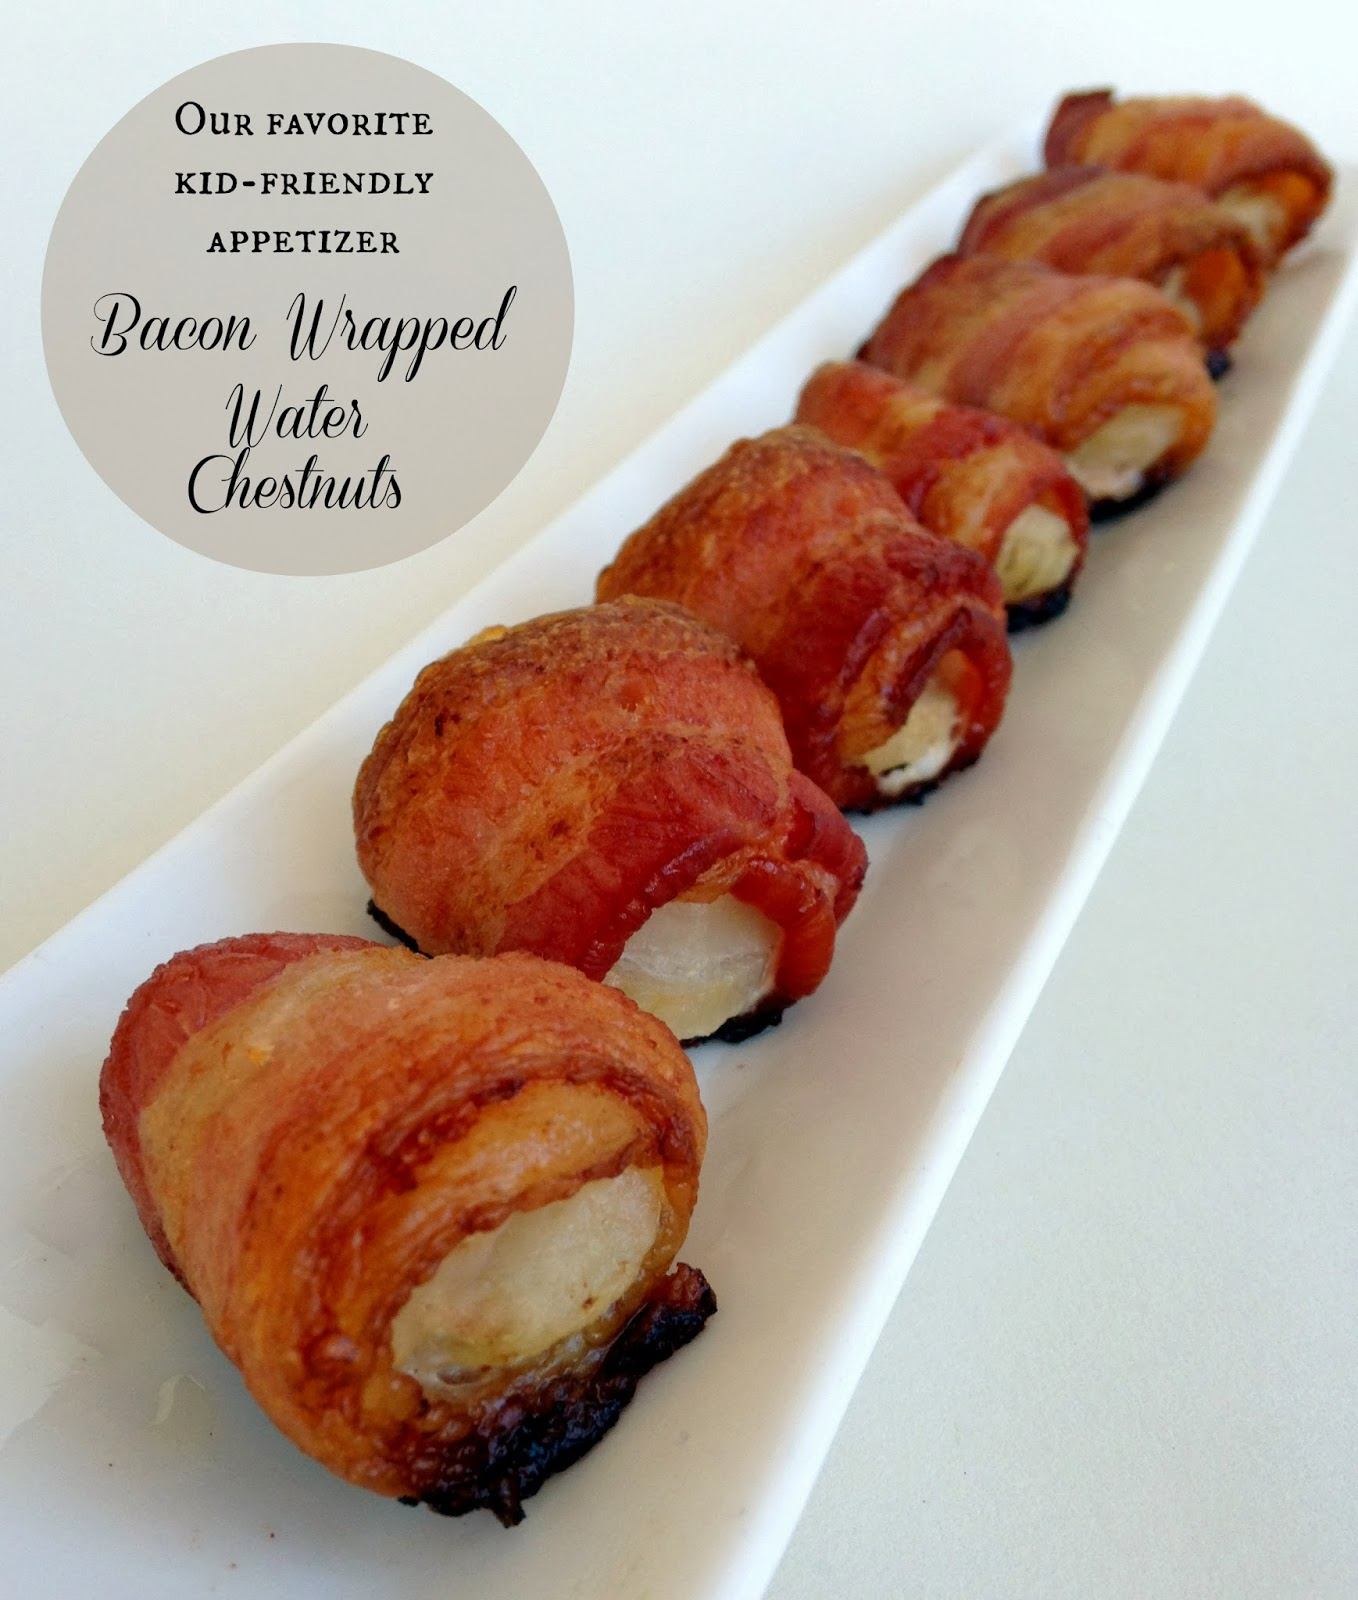 simple kid friendly appetizers jennuine by rook no 17 our favorite kid friendly appetizer bacon wrapped water chestnuts